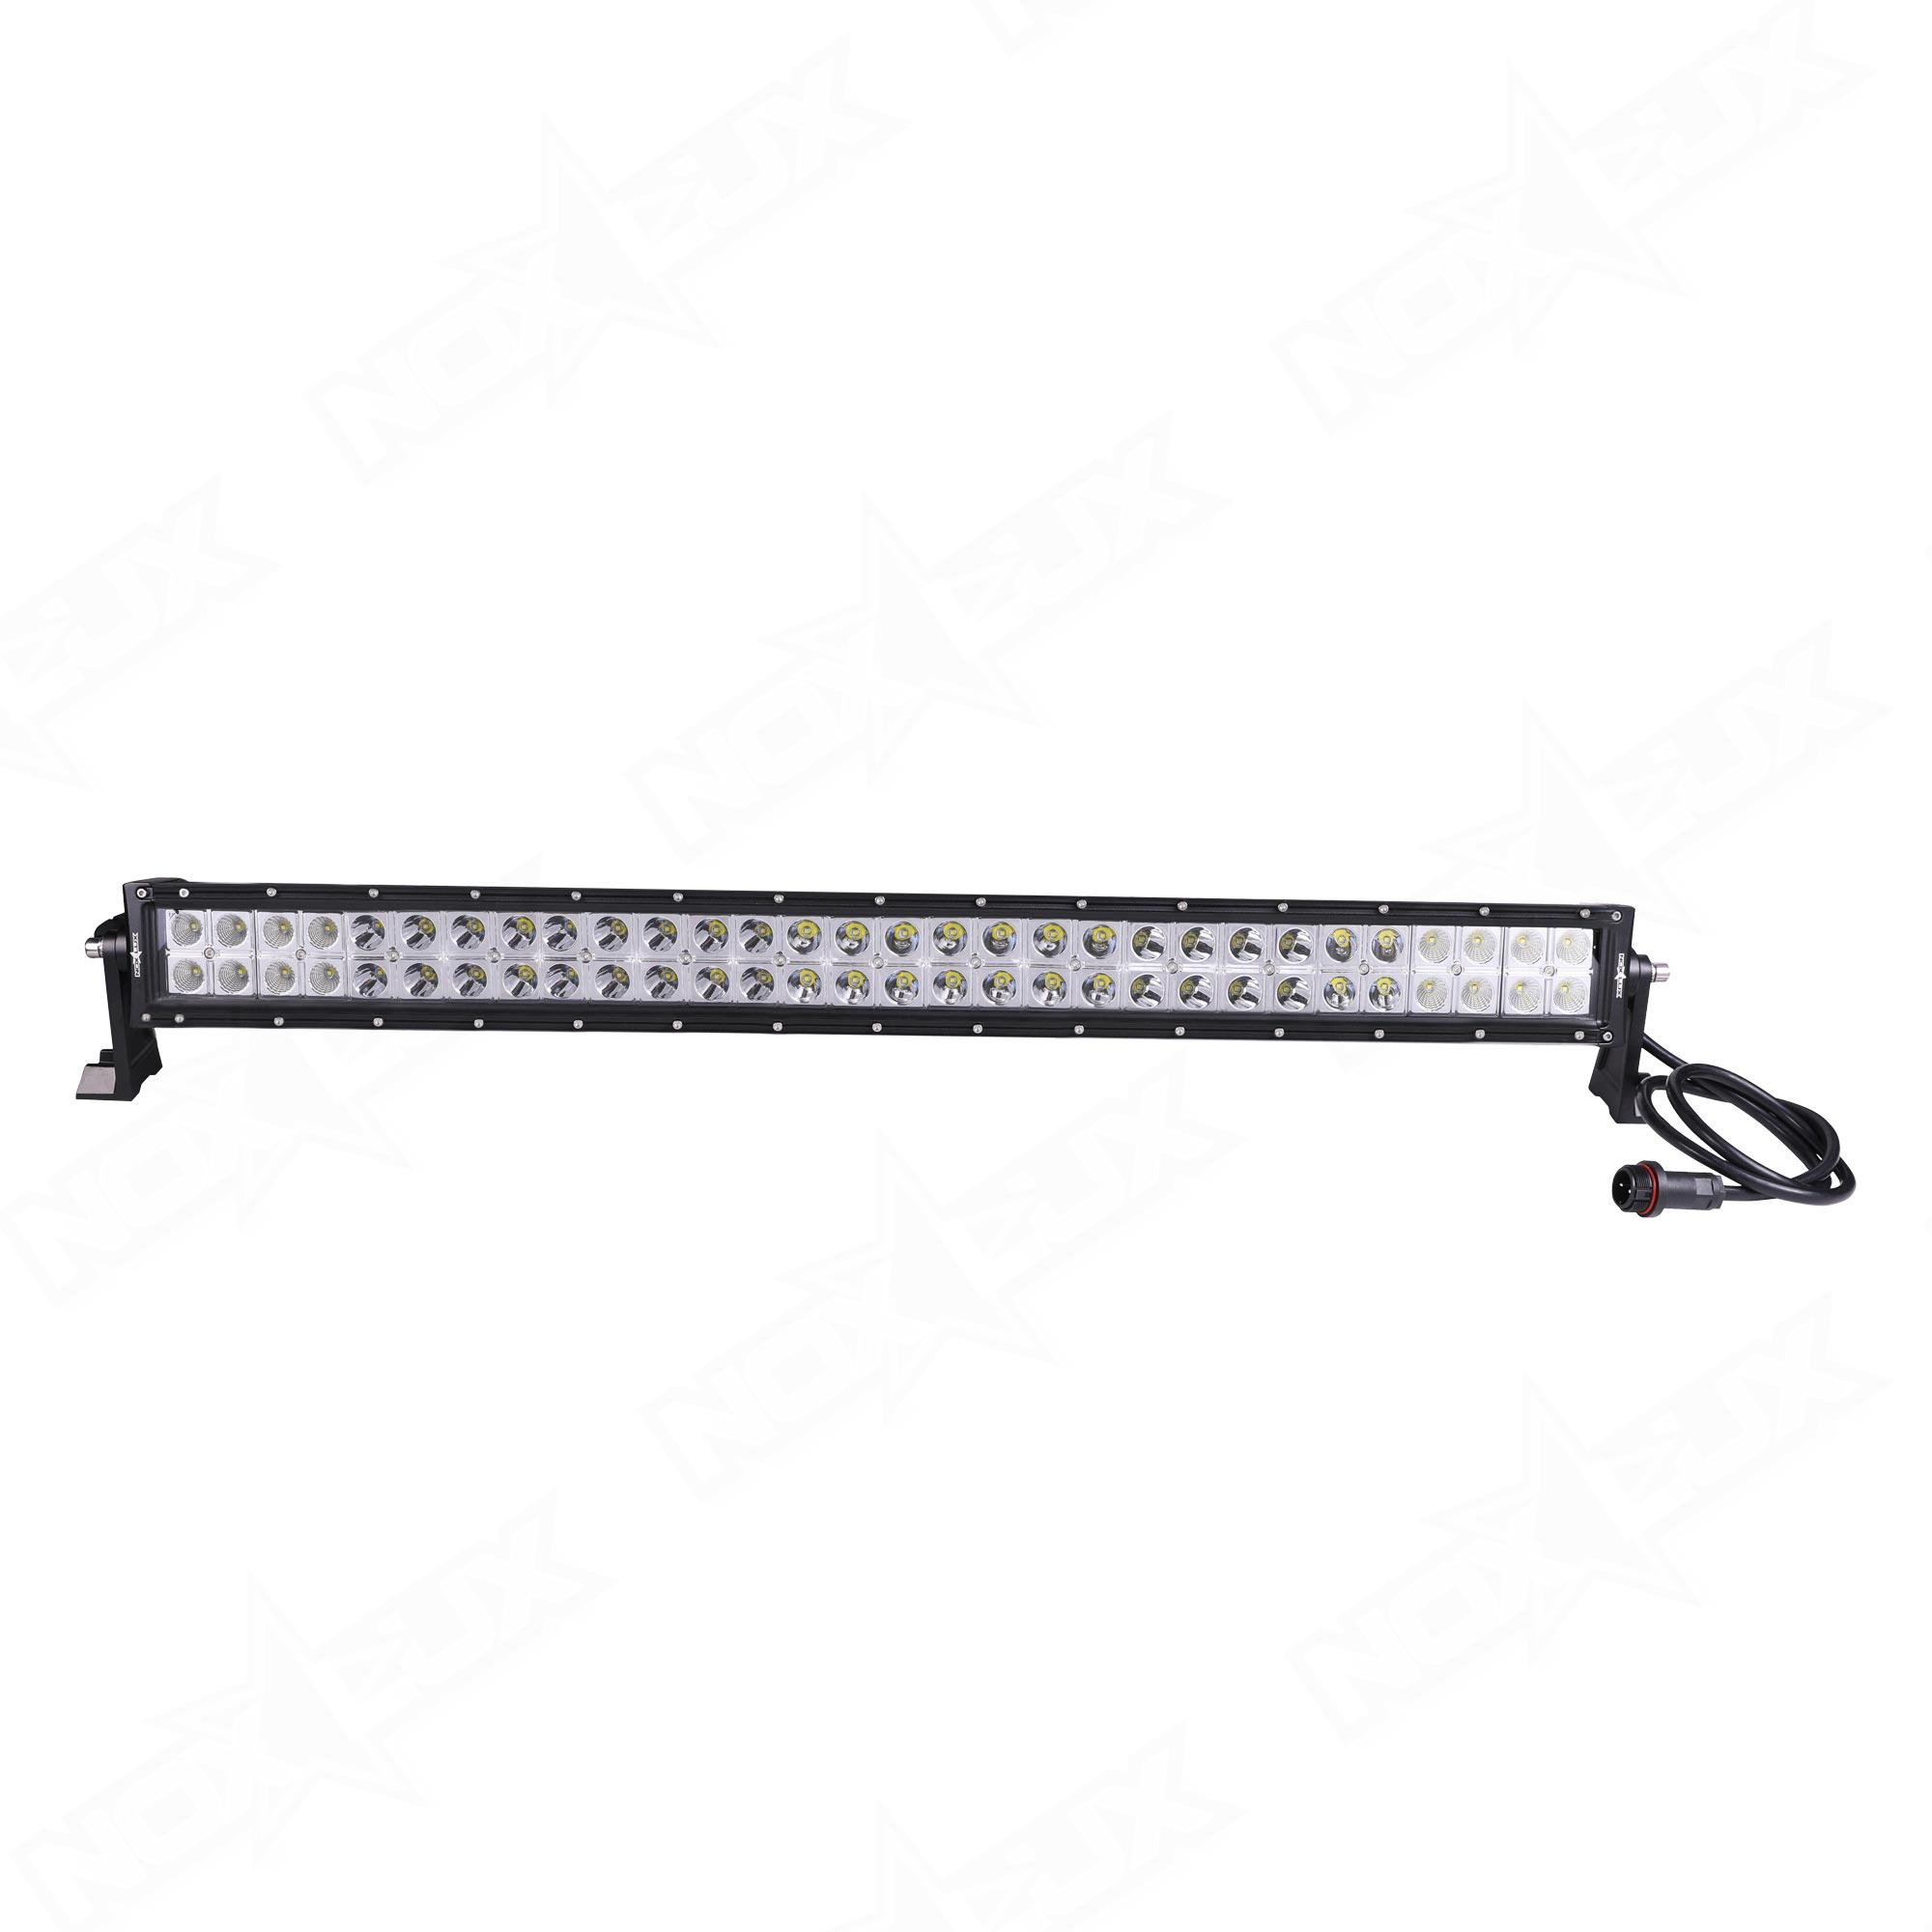 Nox lux adds new high tech dual row led light bars to inventory 30 inch dual row light bar combo back nox lux aloadofball Images